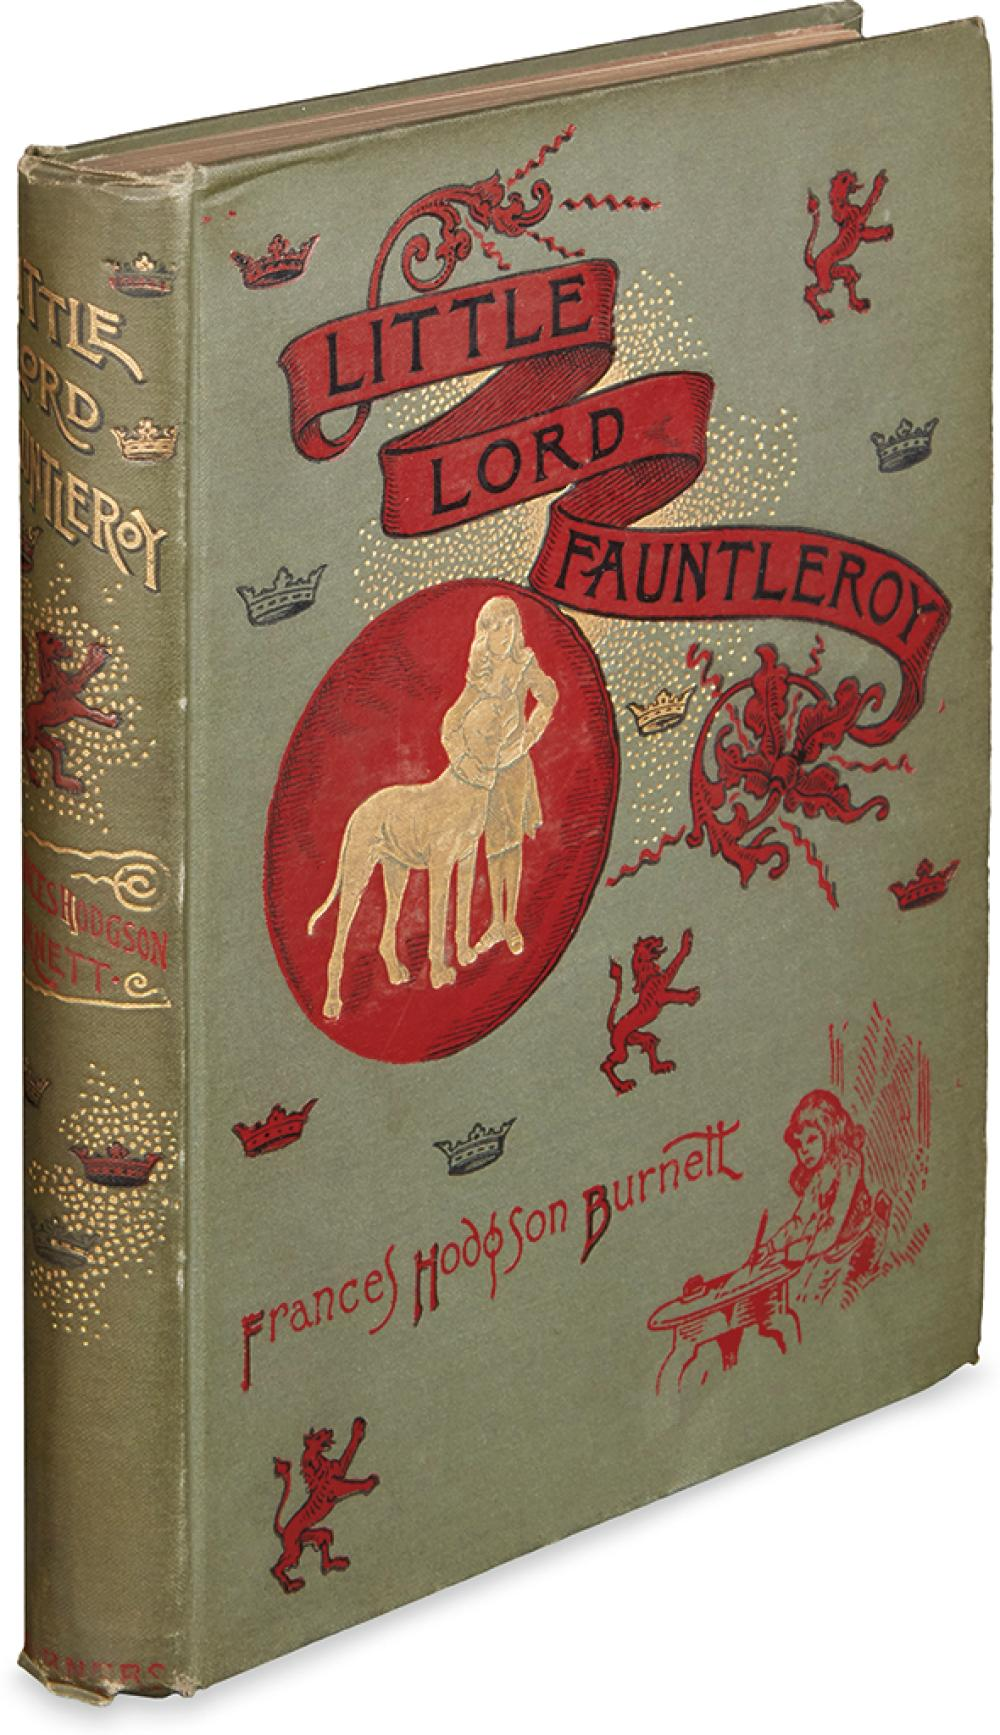 (CHILDREN'S LITERATURE.) BURNETT, FRANCES HODGSON. Little Lord Fauntleroy.